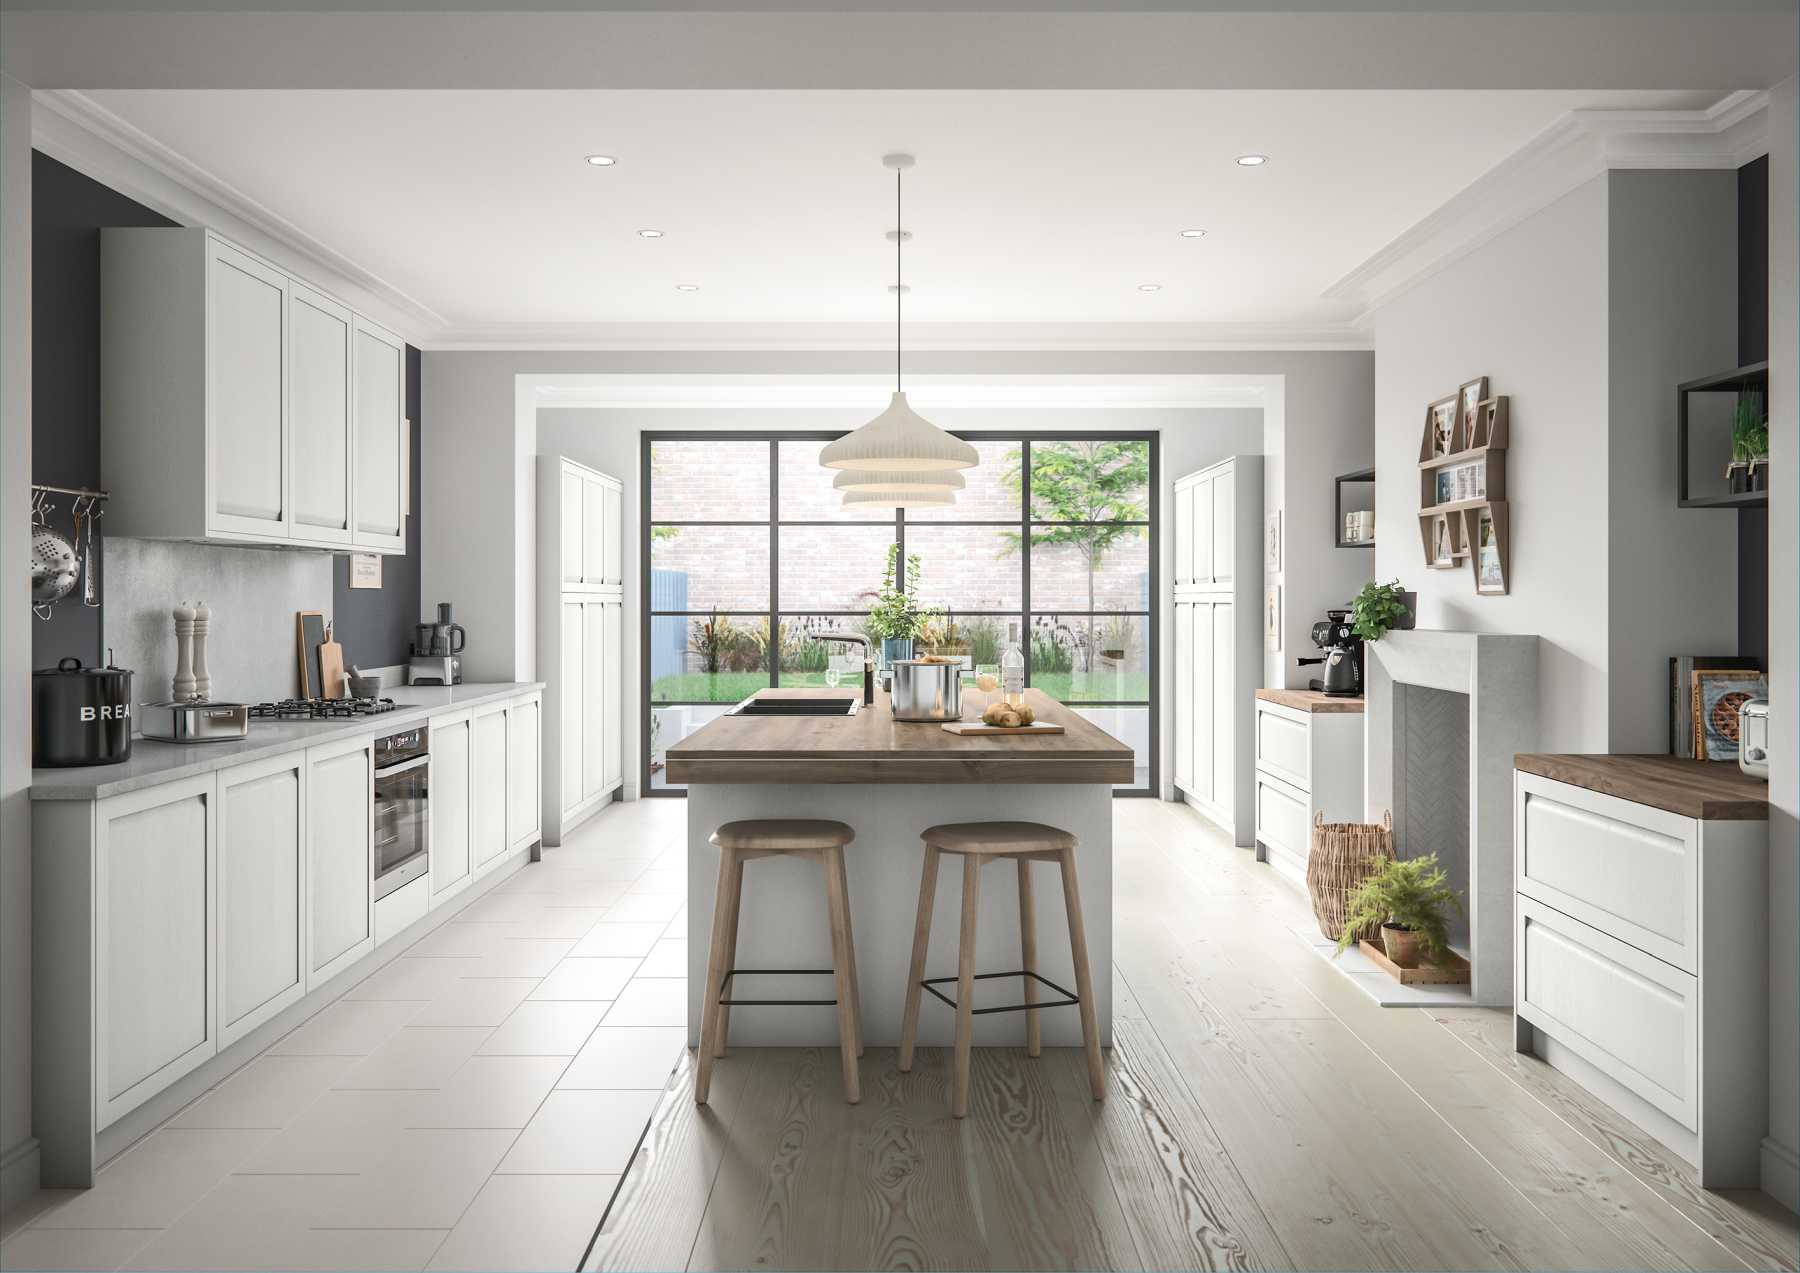 Contemporary handleless shaker style galley kitchen painted matte light grey